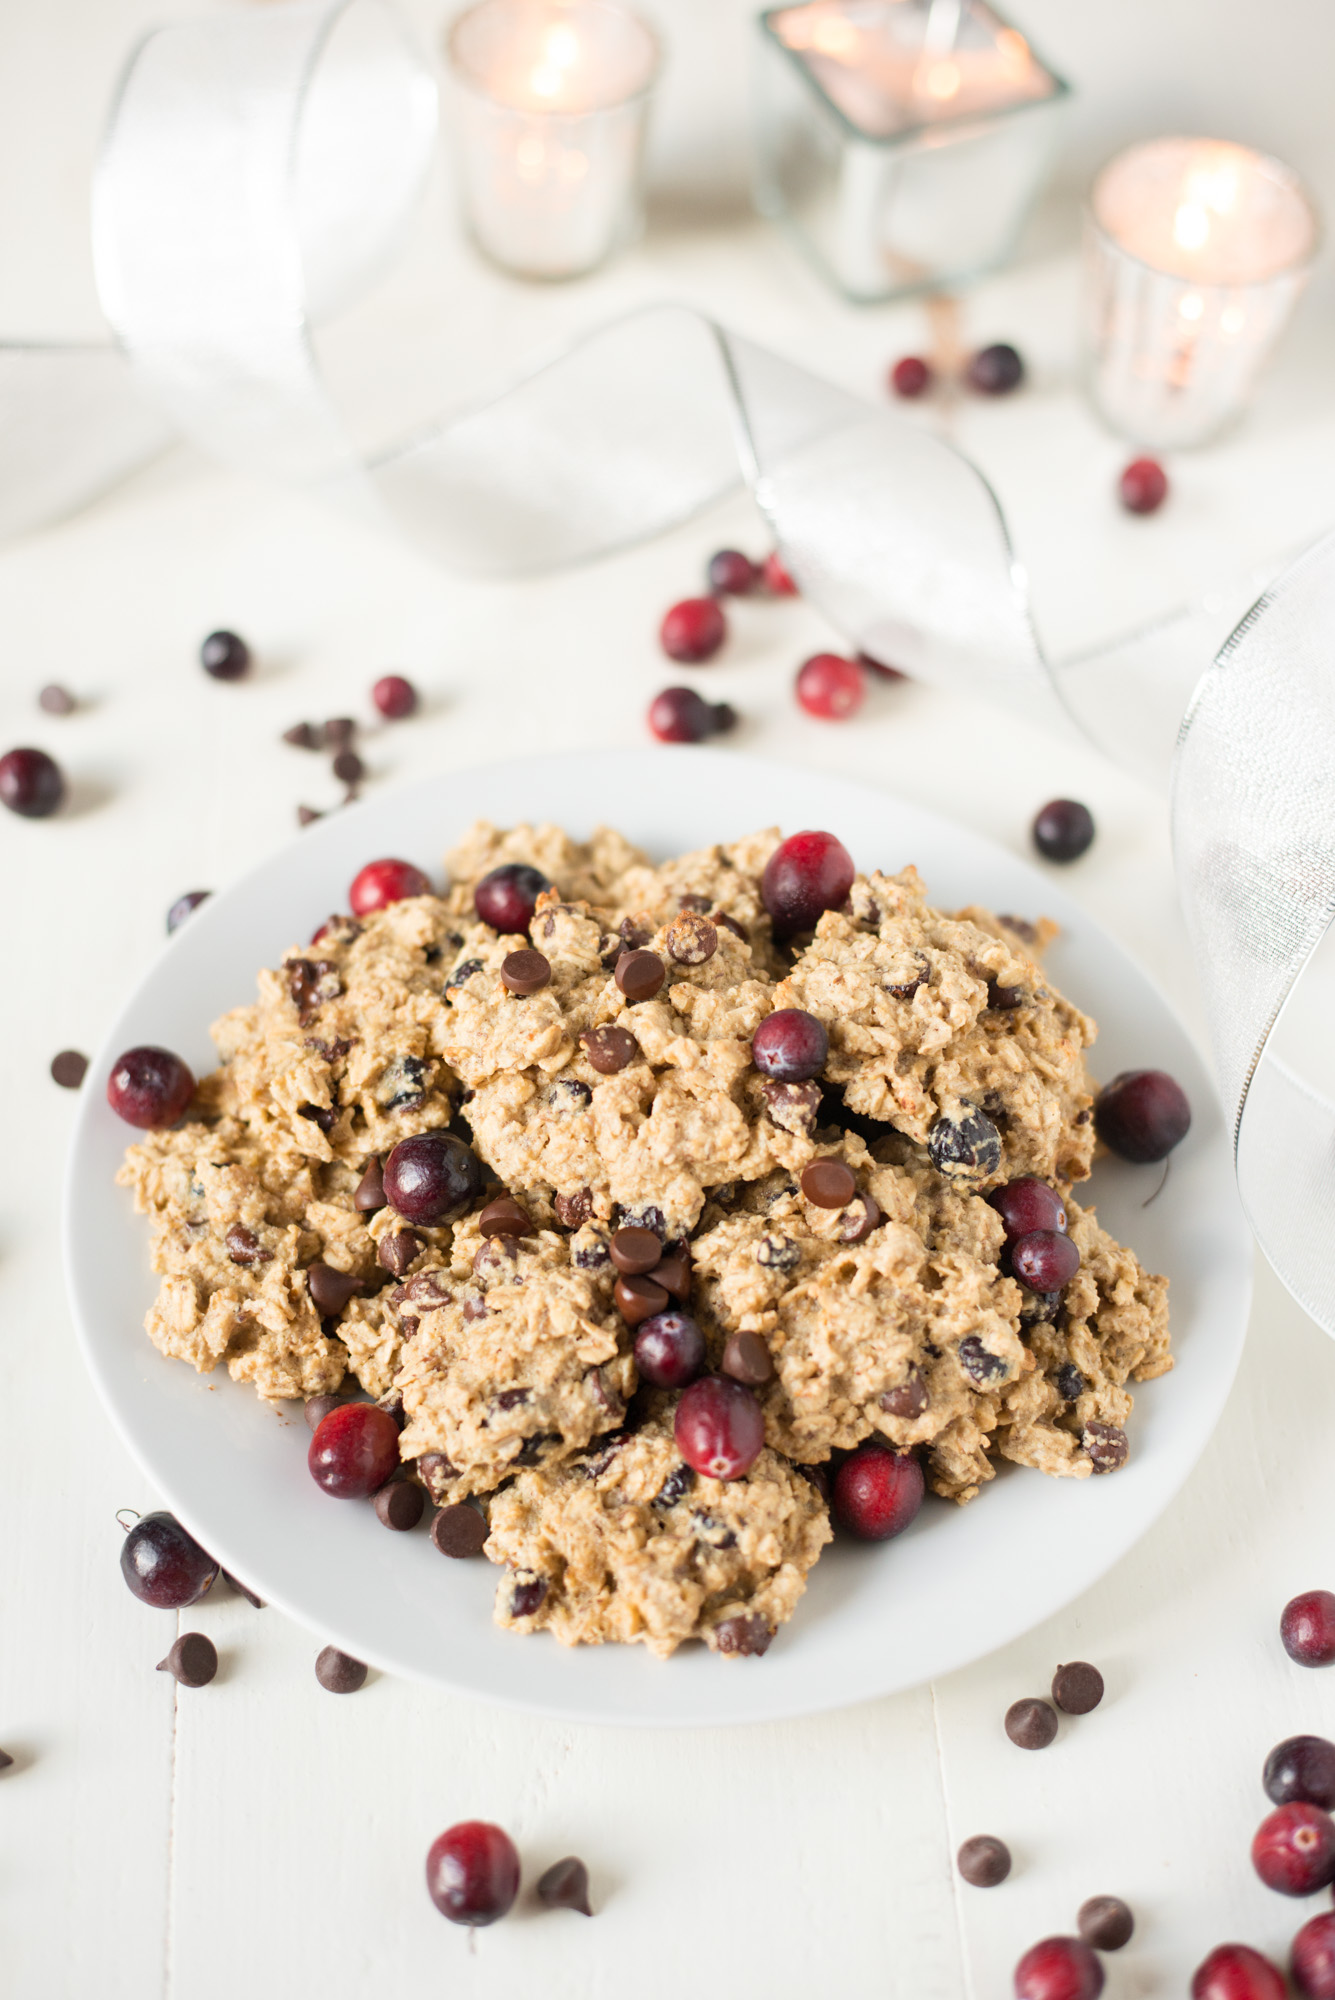 Easy to make and delicious to eat, One-Bowl Chocolate Cranberry Breakfast Cookies are a sweet and wholesome way to start the day!